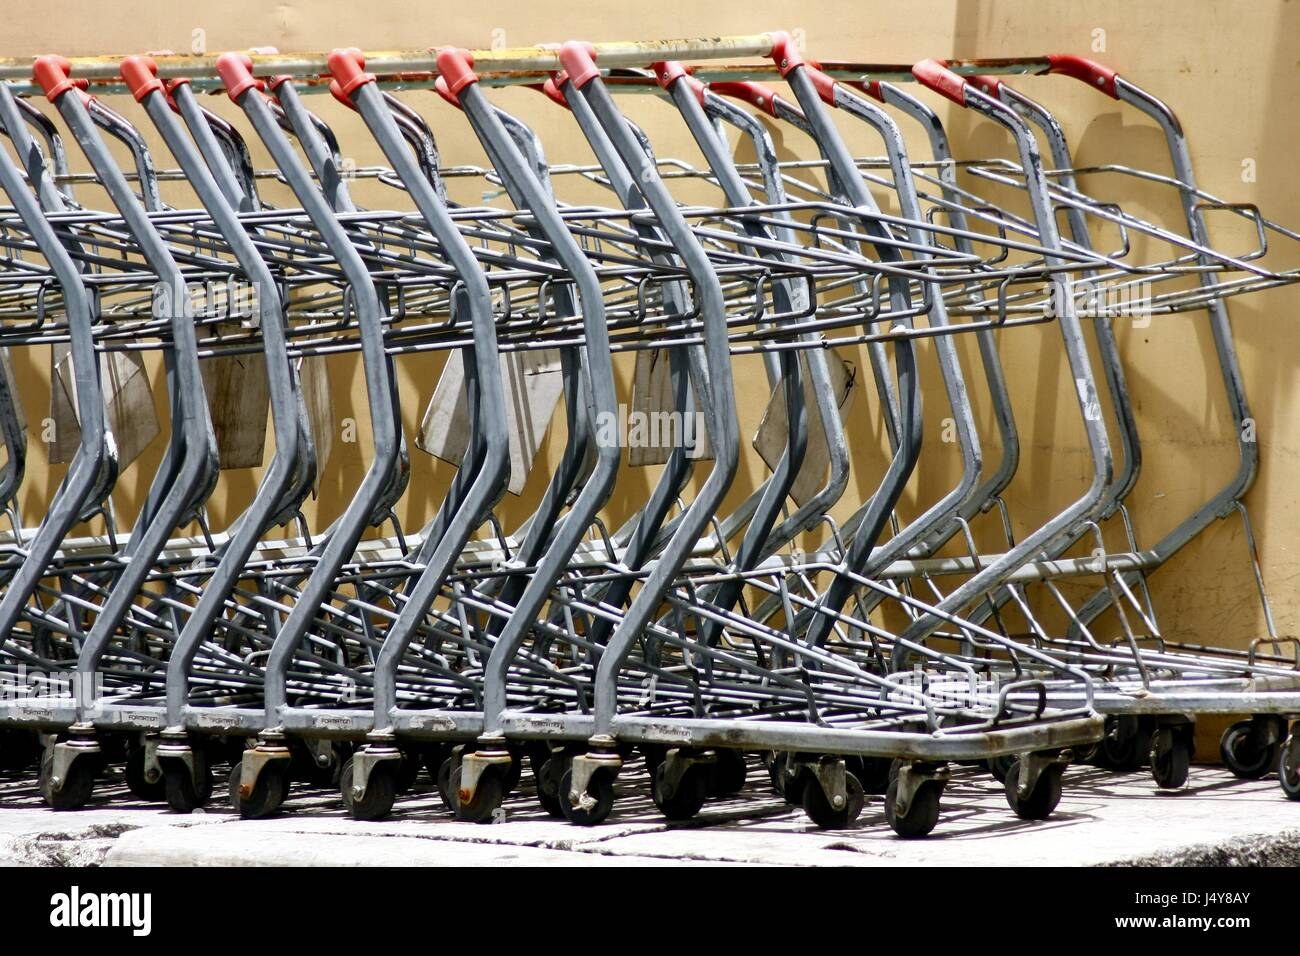 Photo of stacked old grocery or shopping carts - Stock Image